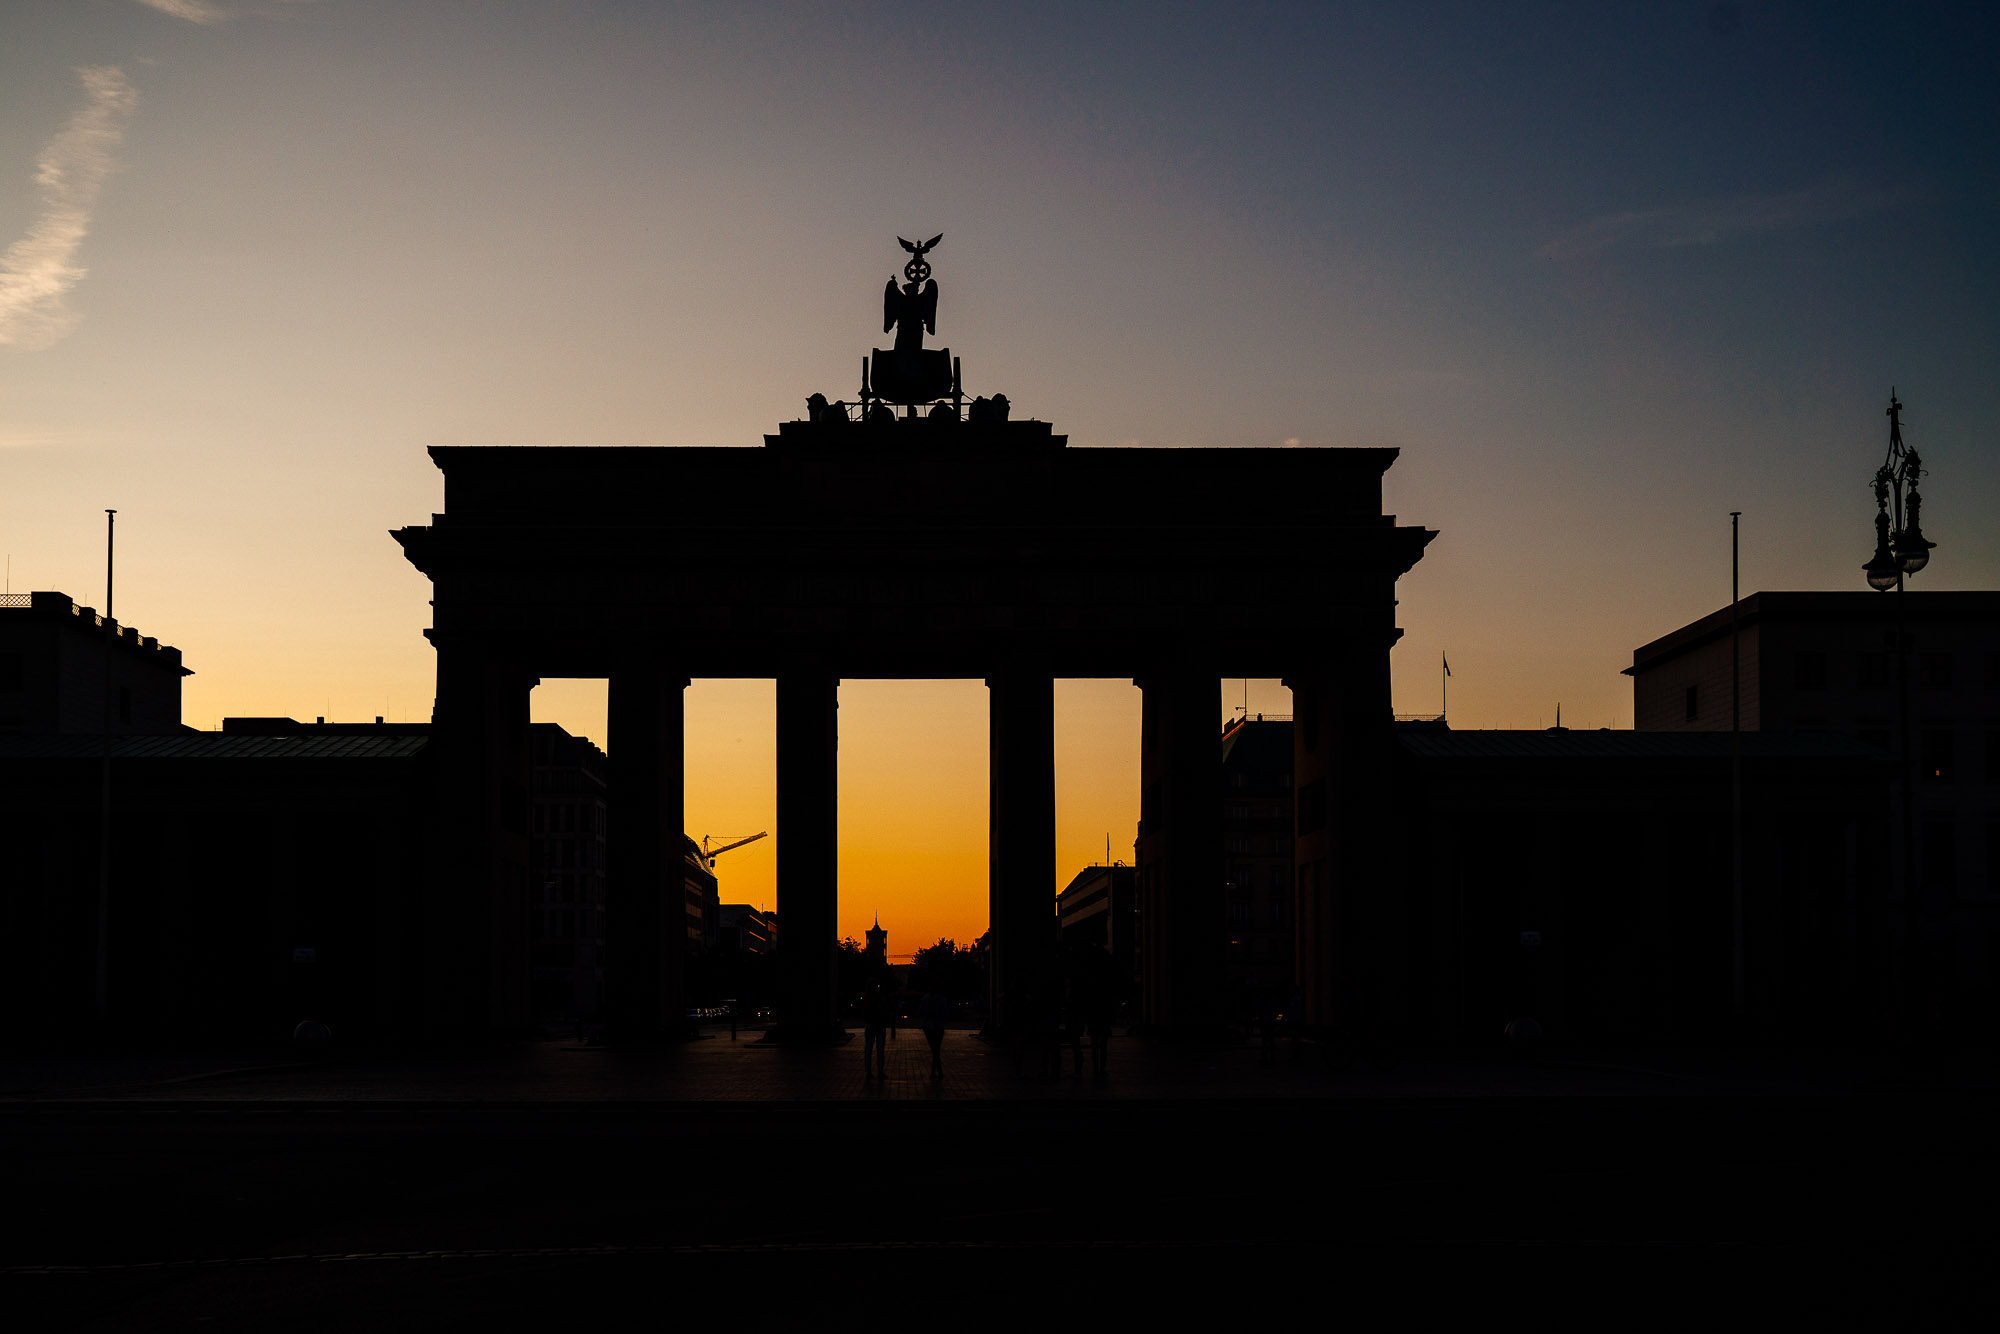 Brandenburg Gate berlin Photography Martin U Waltz